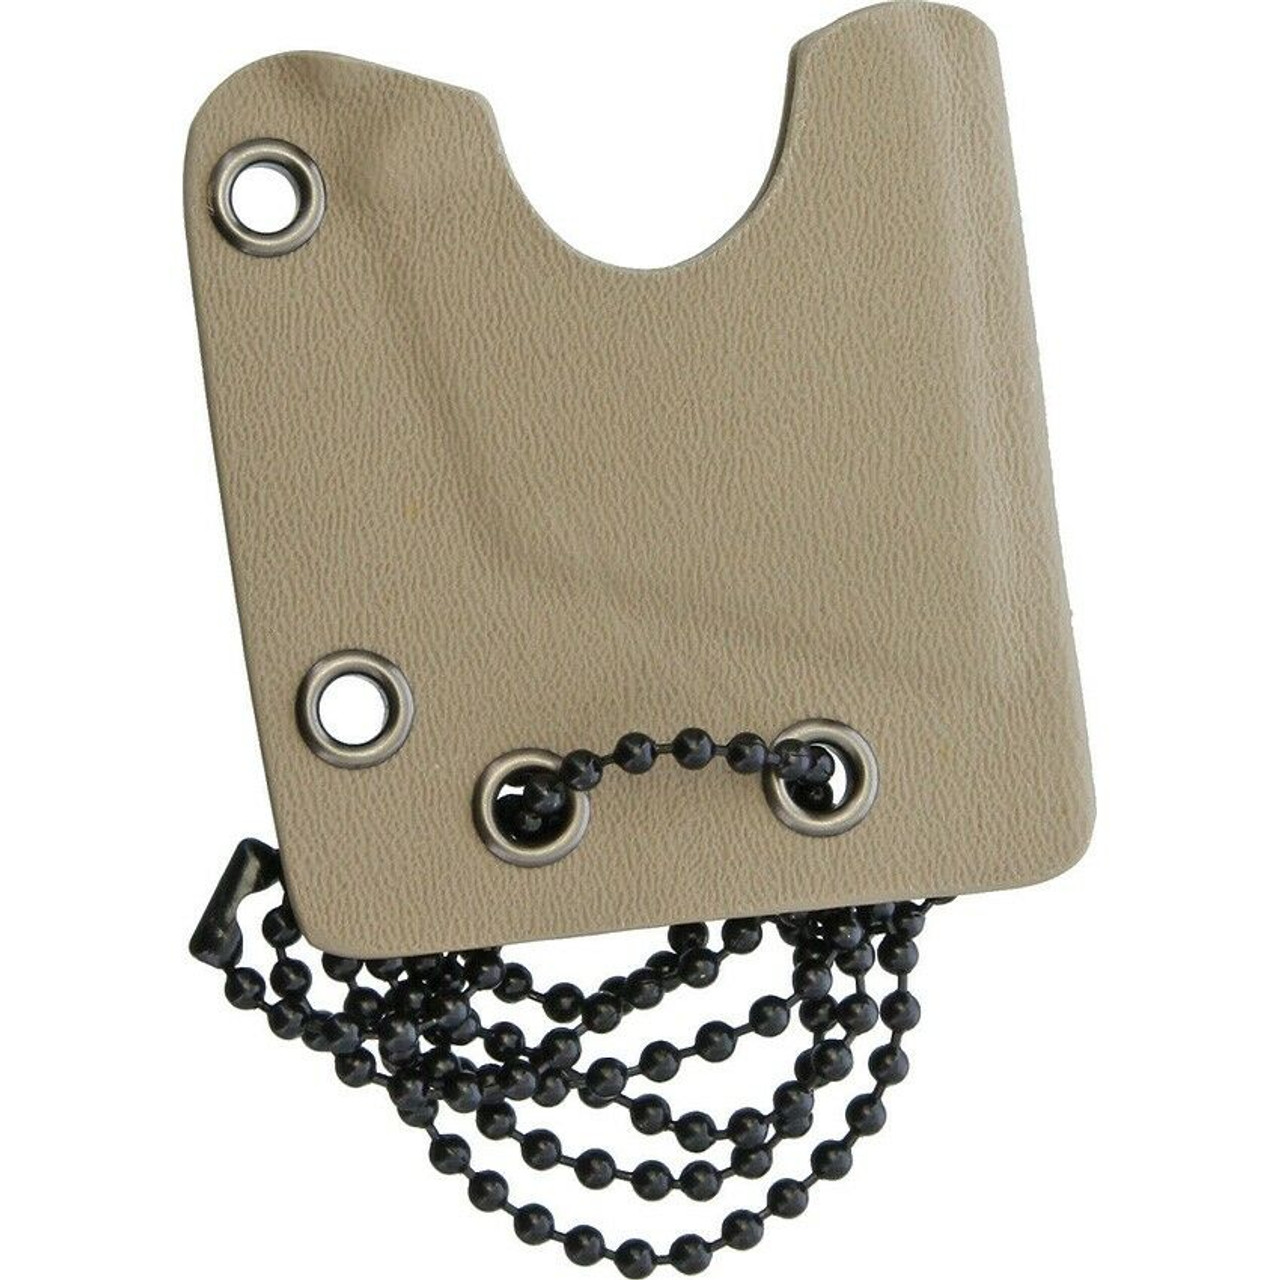 Black Cat Real Steel Knives Coyote 3127 Neck Knife